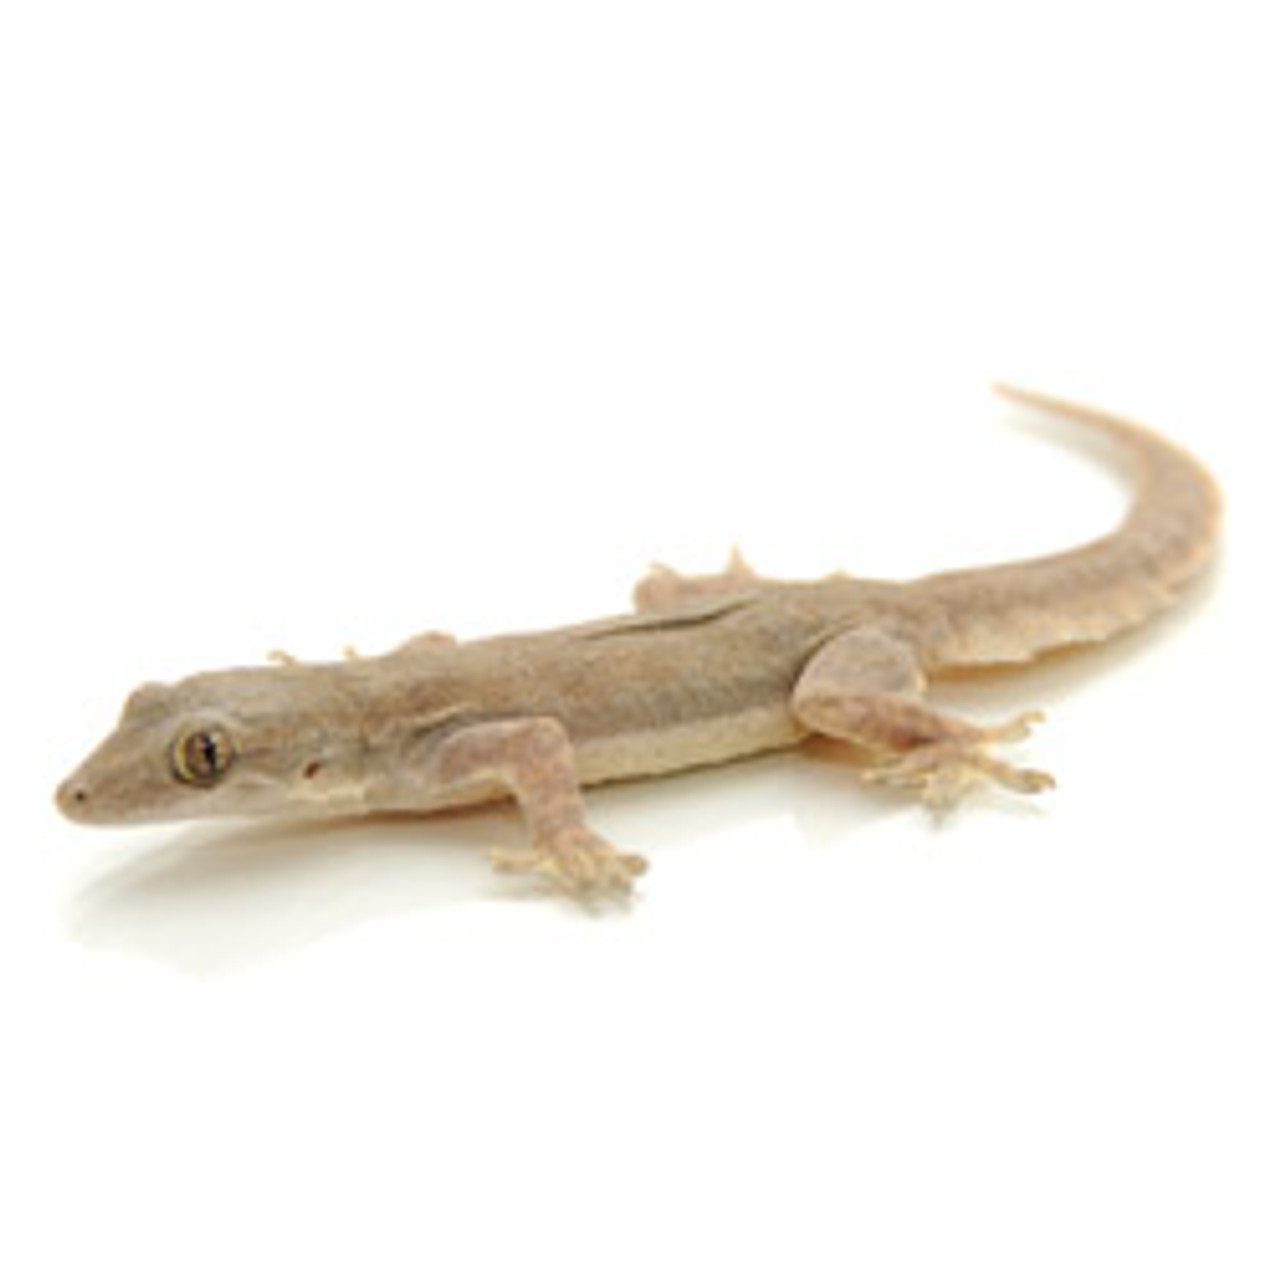 House Gecko (Hemidactylus frenatus)